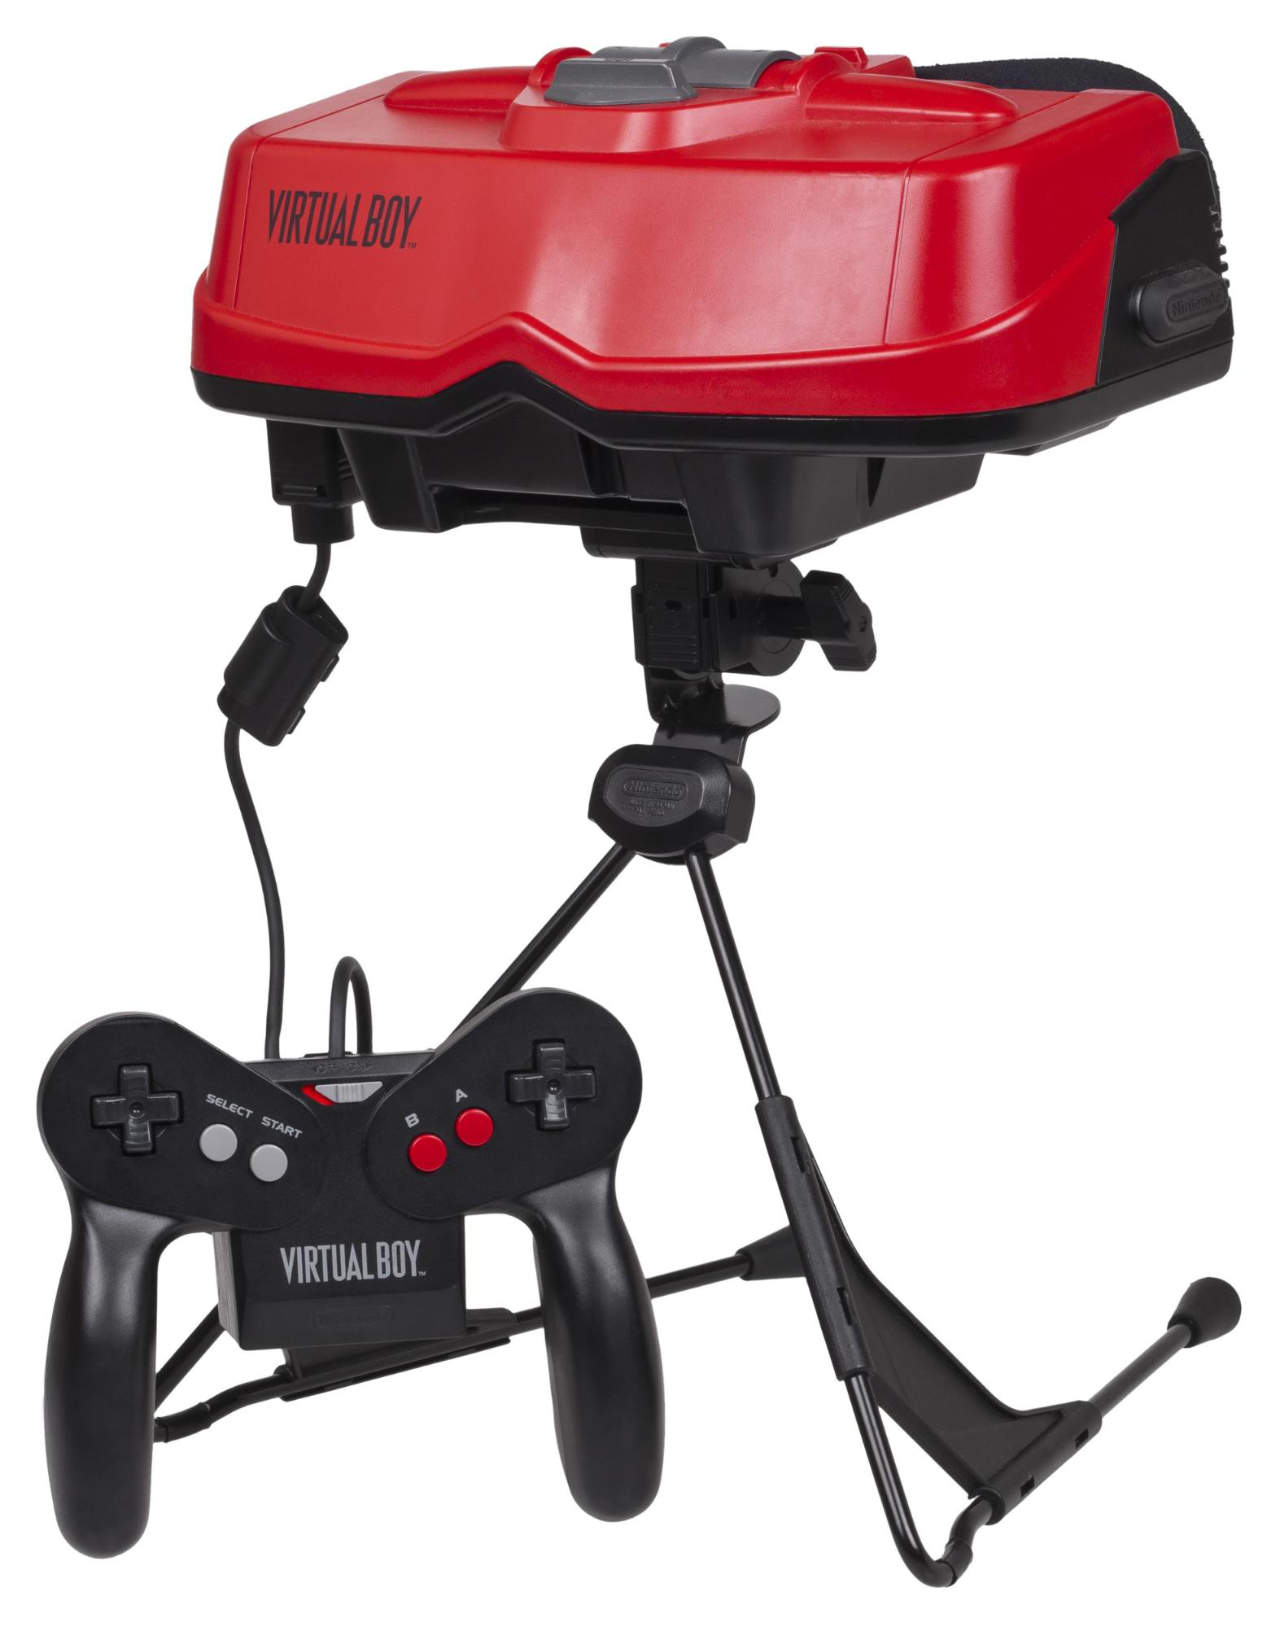 nintendo_virtual_boy.jpg